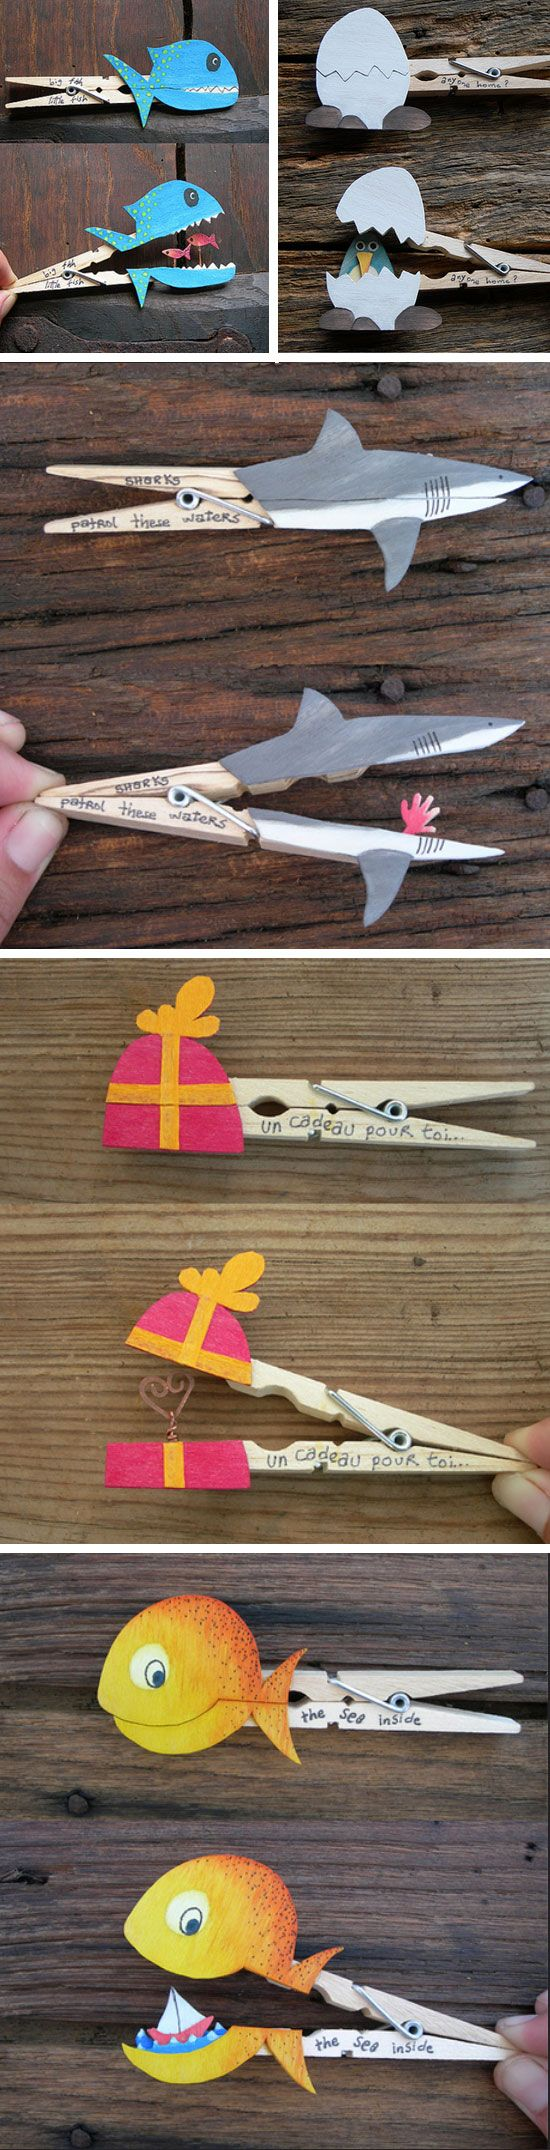 Clothes Peg Crafts | 18 DIY Summer Art Projects for Kids to Make | Easy Art Projects for Boys - Crafting Is My Life